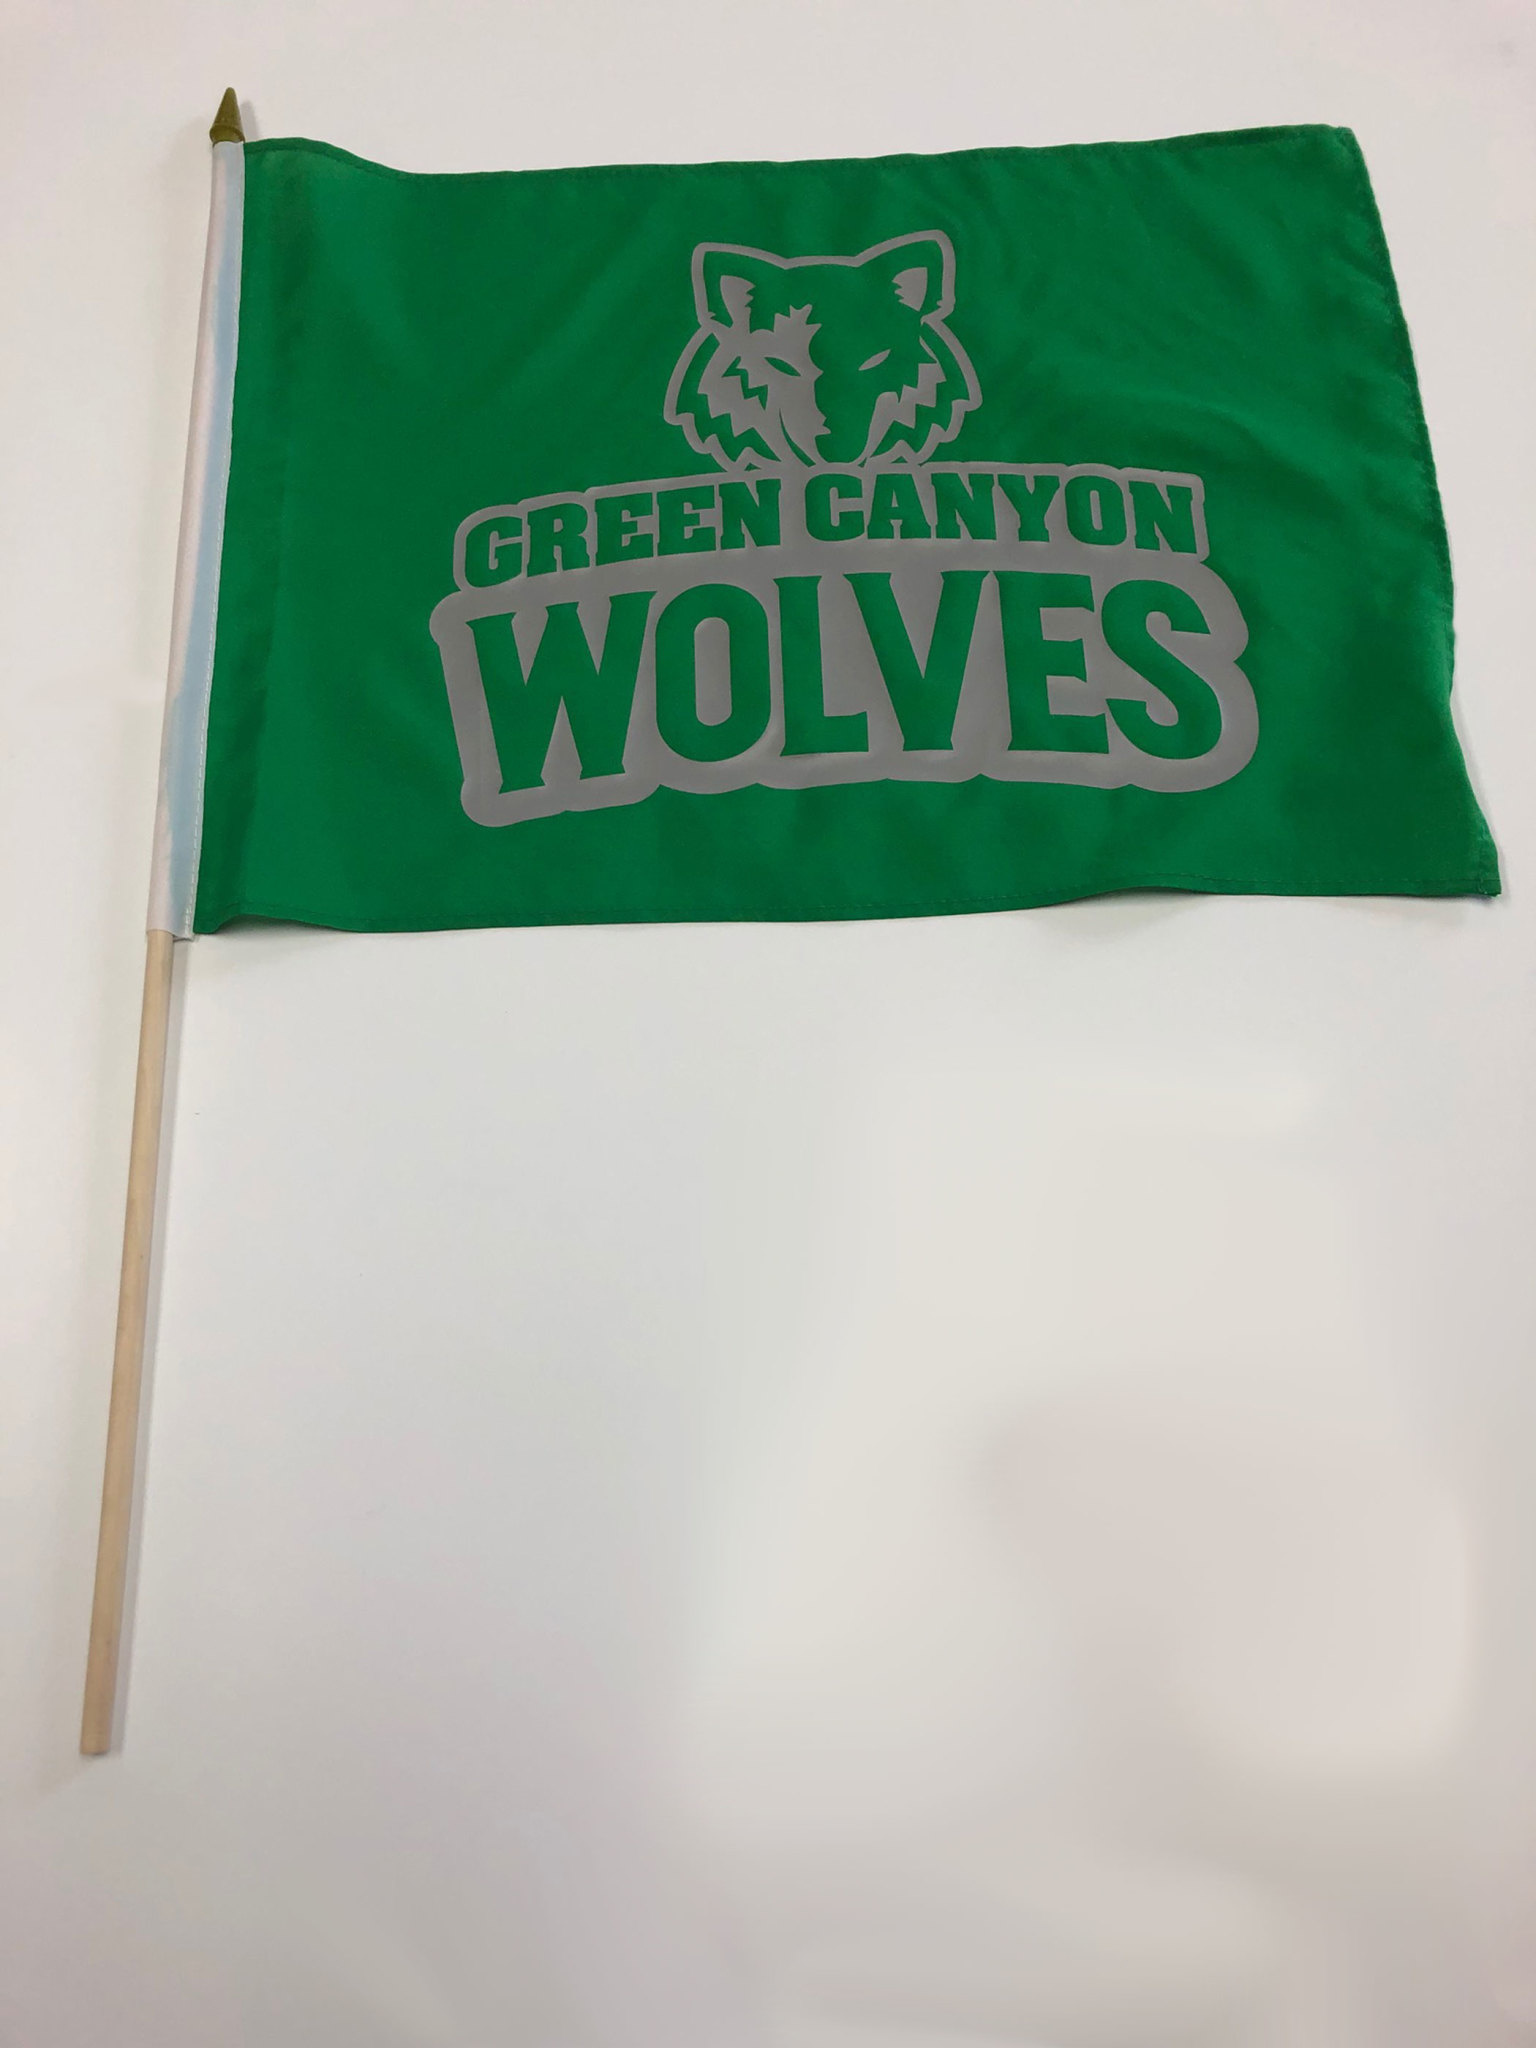 School Spirit Flag - Green Canyon